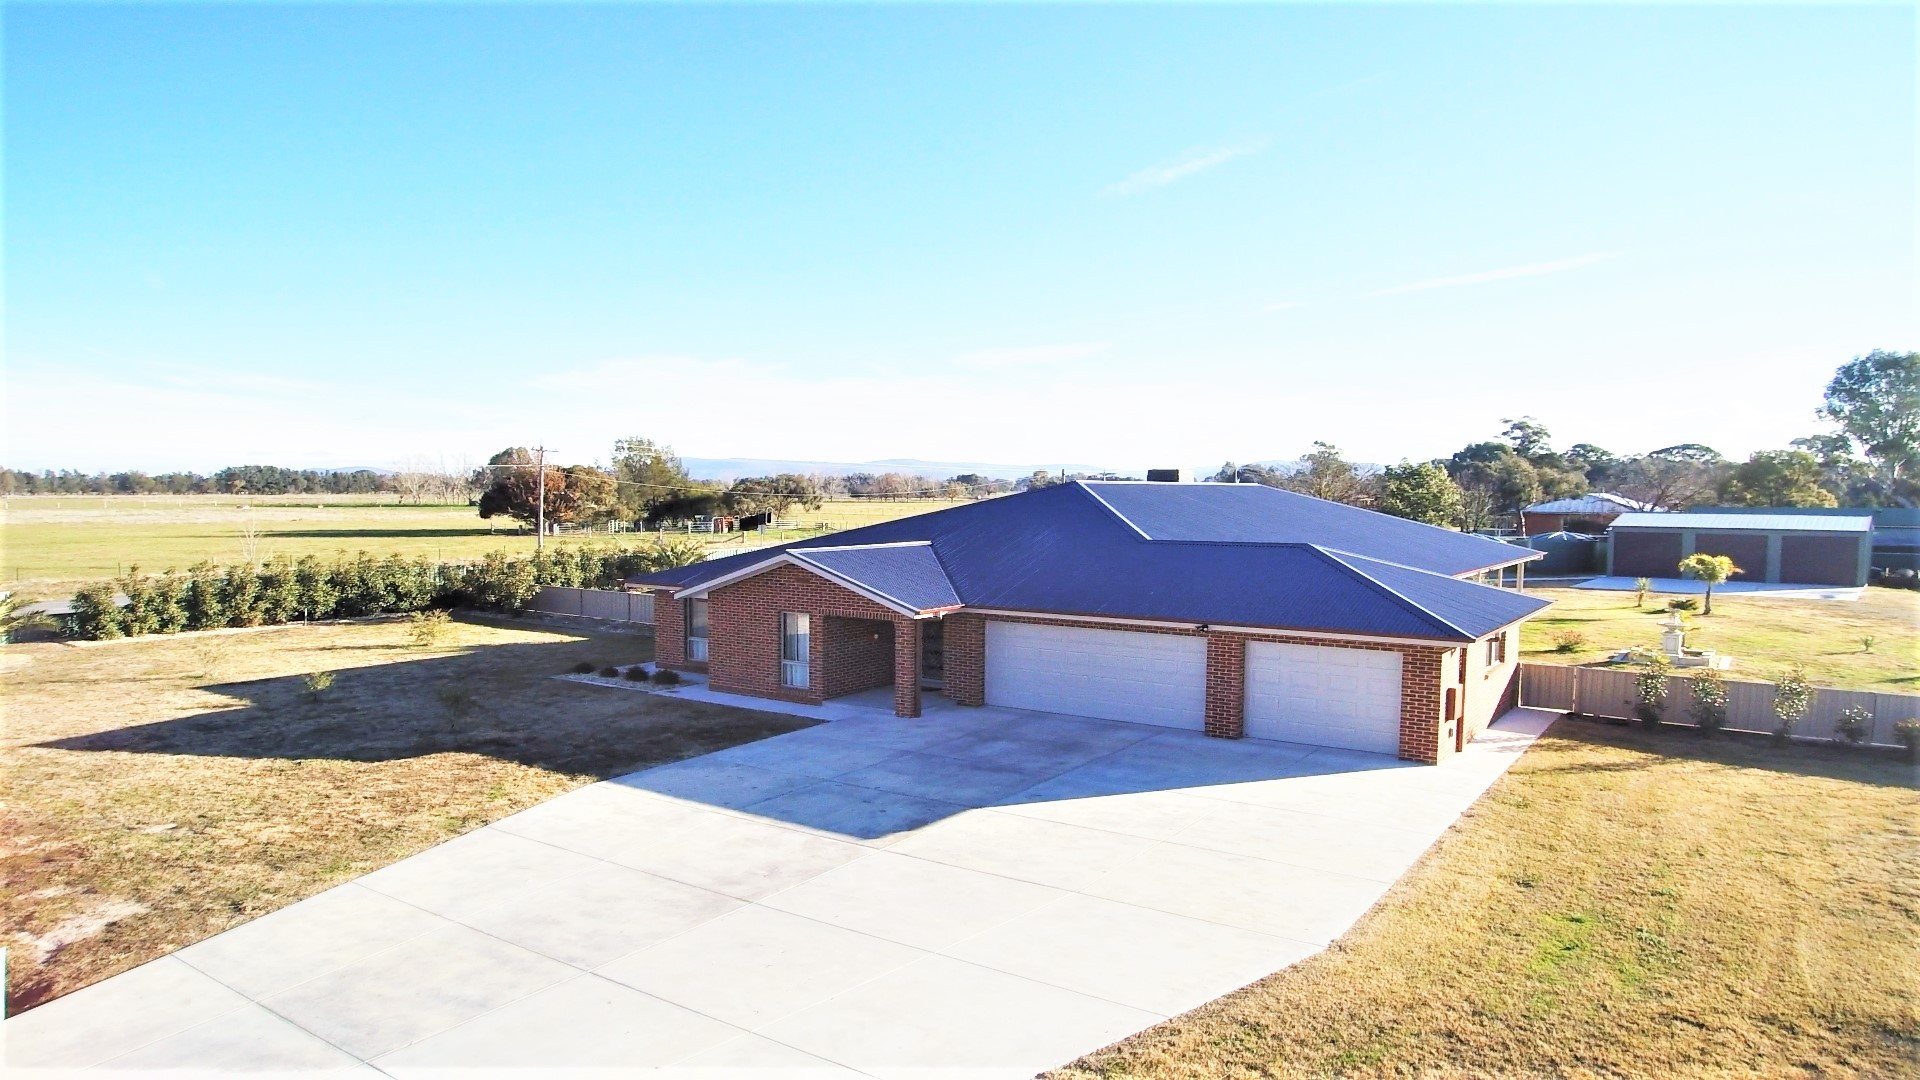 For Sale Buyer Range $649,000 to $669,000